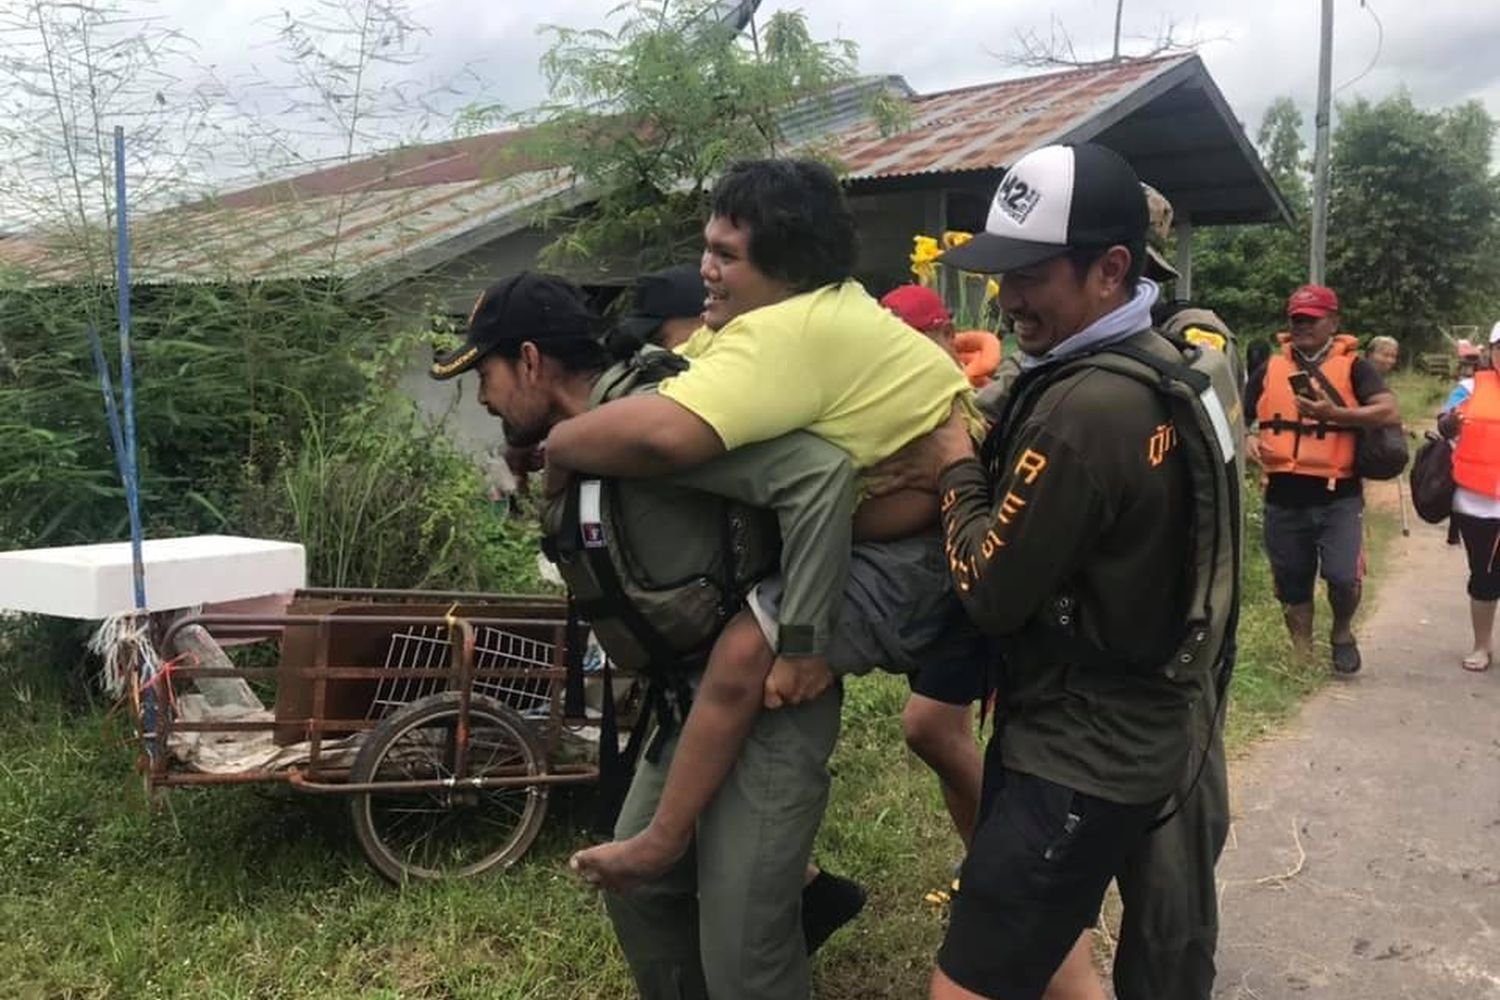 Bin Bunluerit carries a handicapped person on his trip to help flood vticms in Ubon Ratchathani province on Saturday (Photo from บิณฑ์ บรรลือฤทธิ์ Facebook)